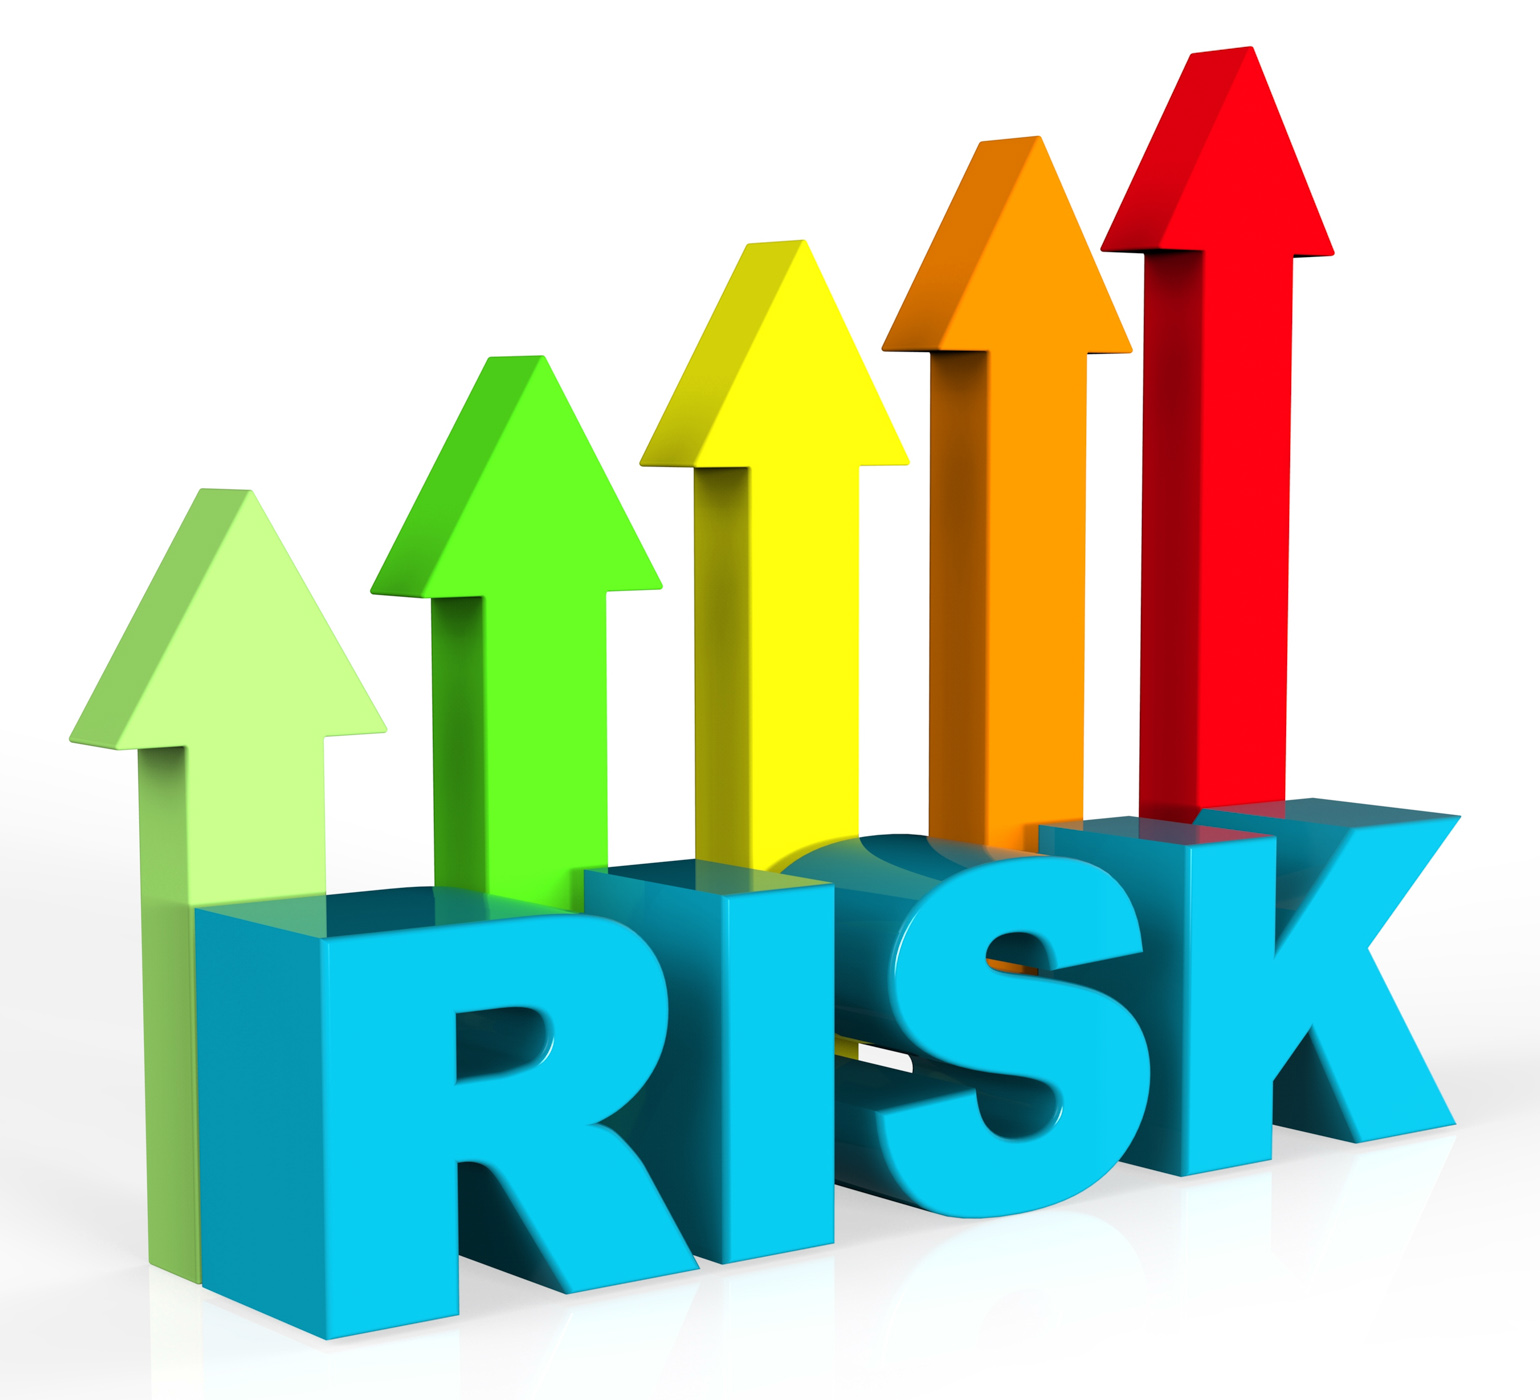 Increase risk means hurdle danger and insecurity photo